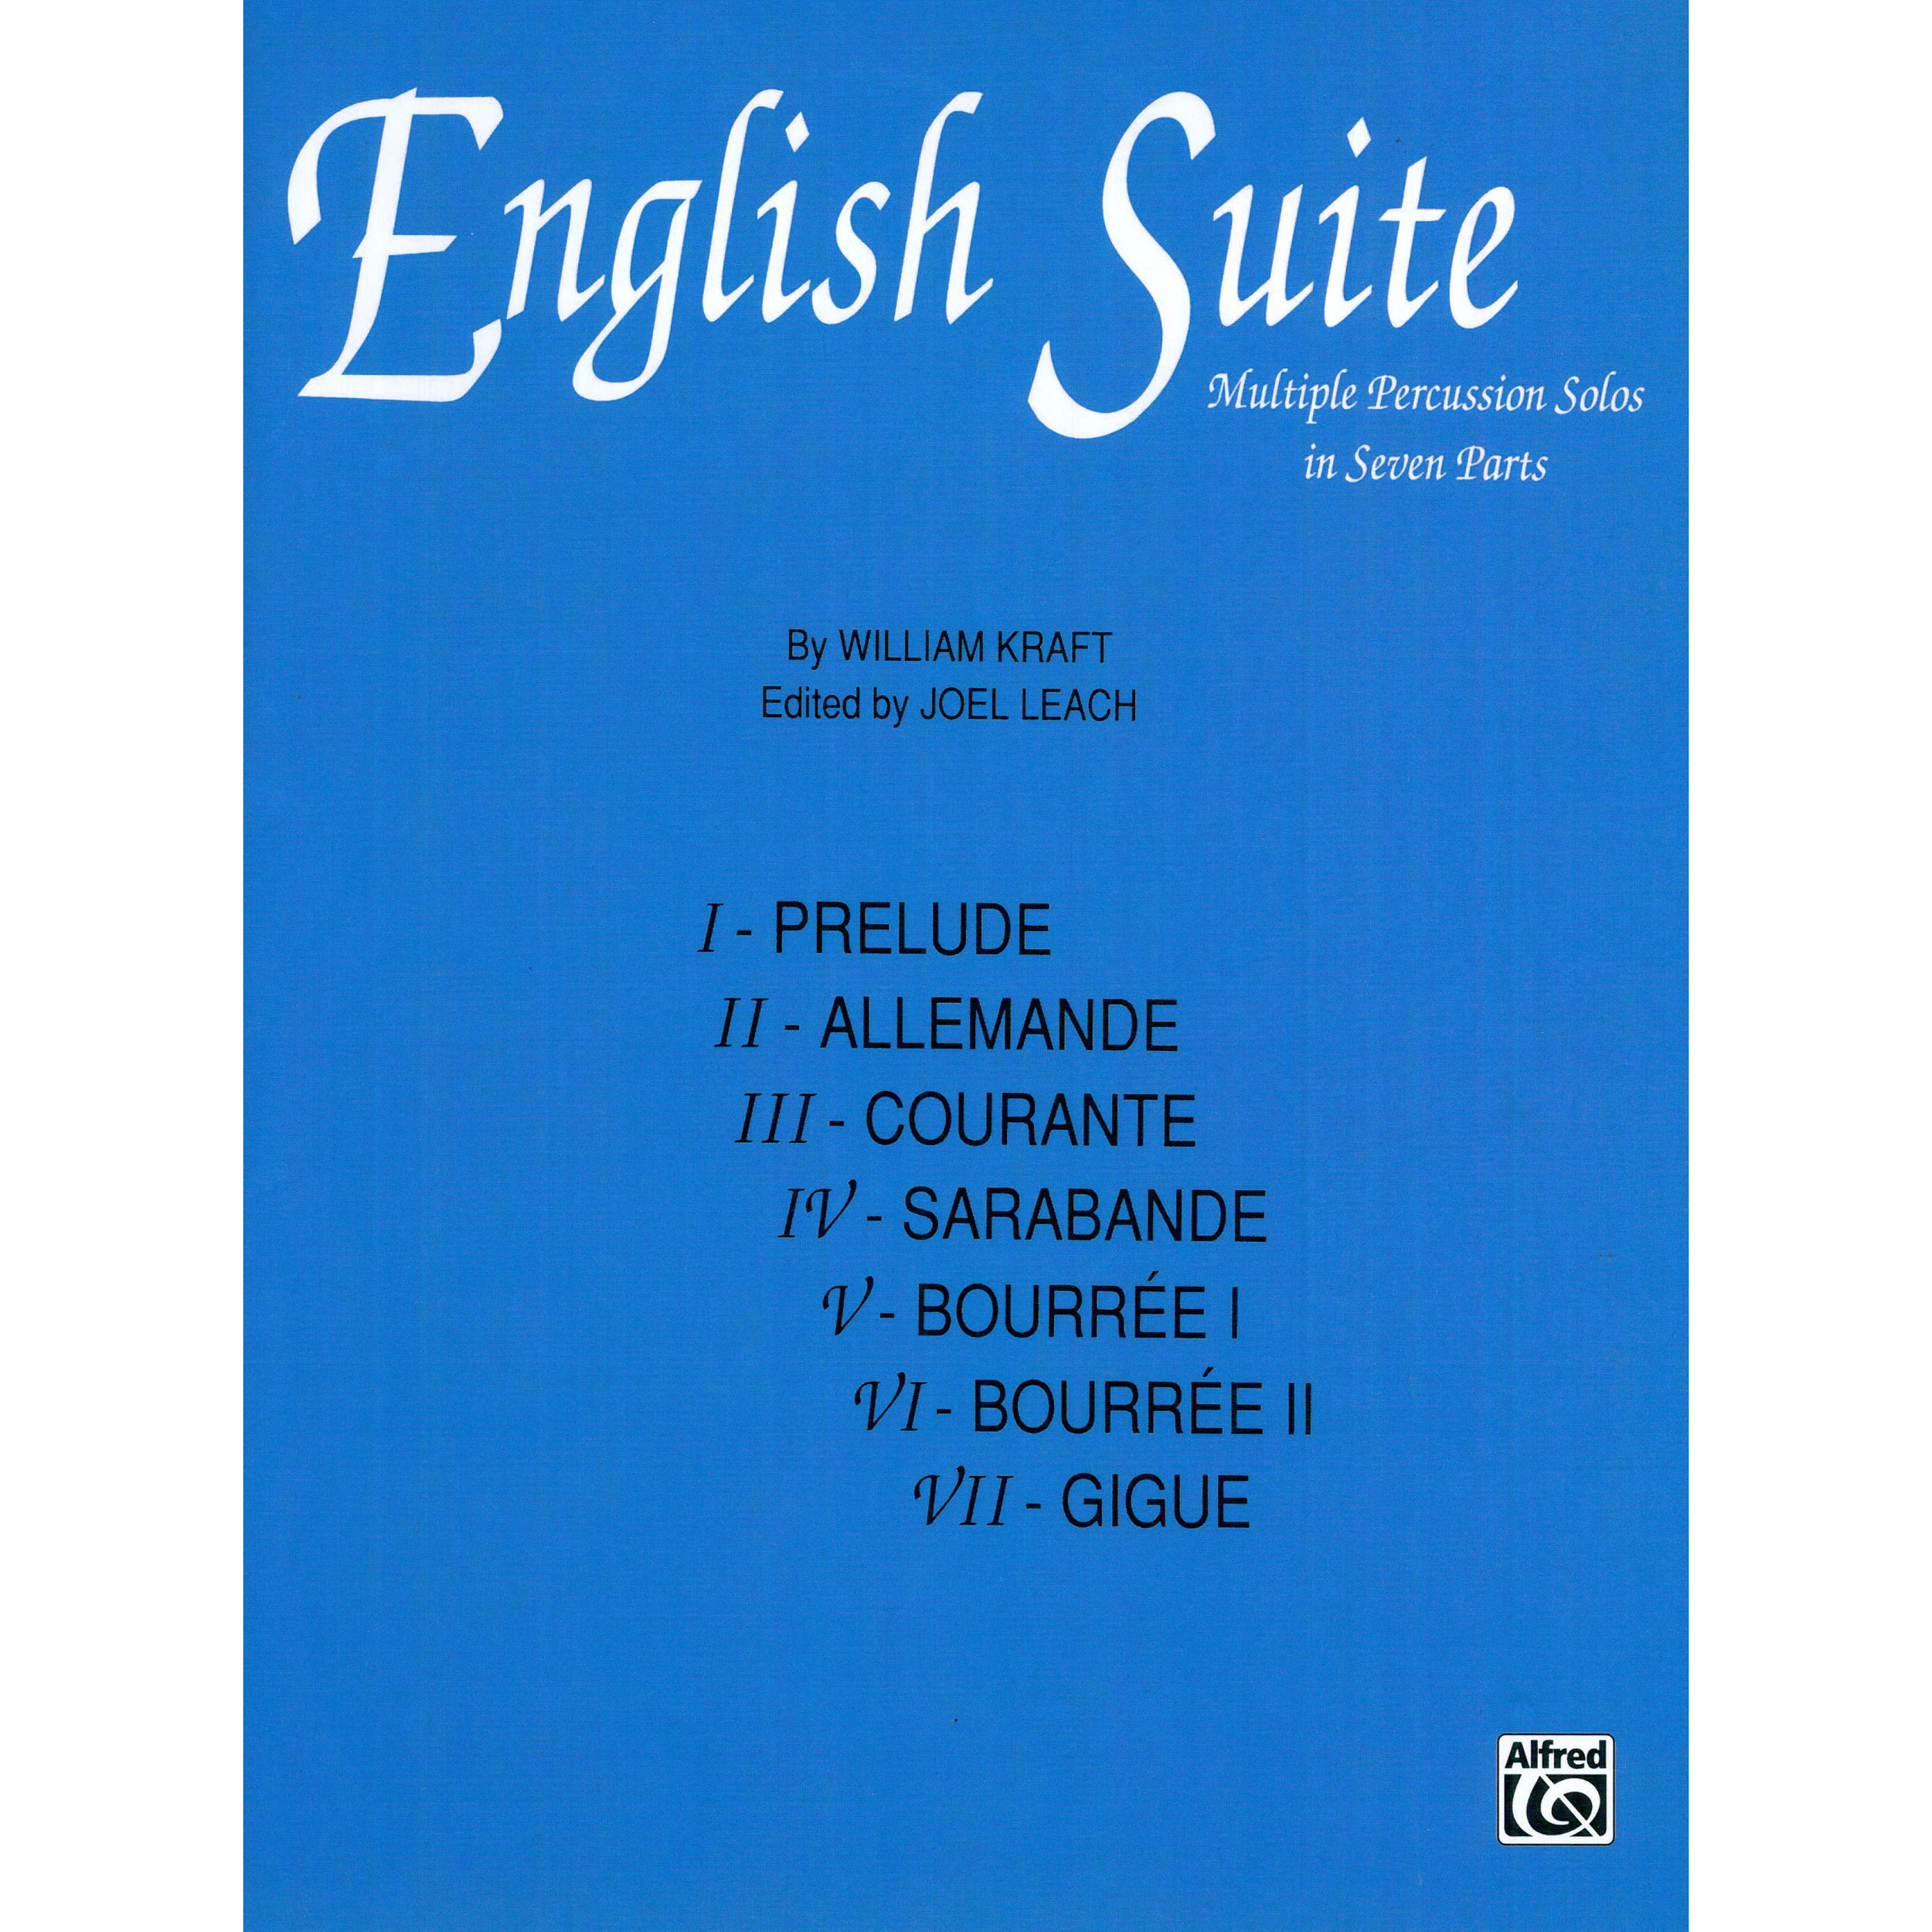 English Suite by William Kraft